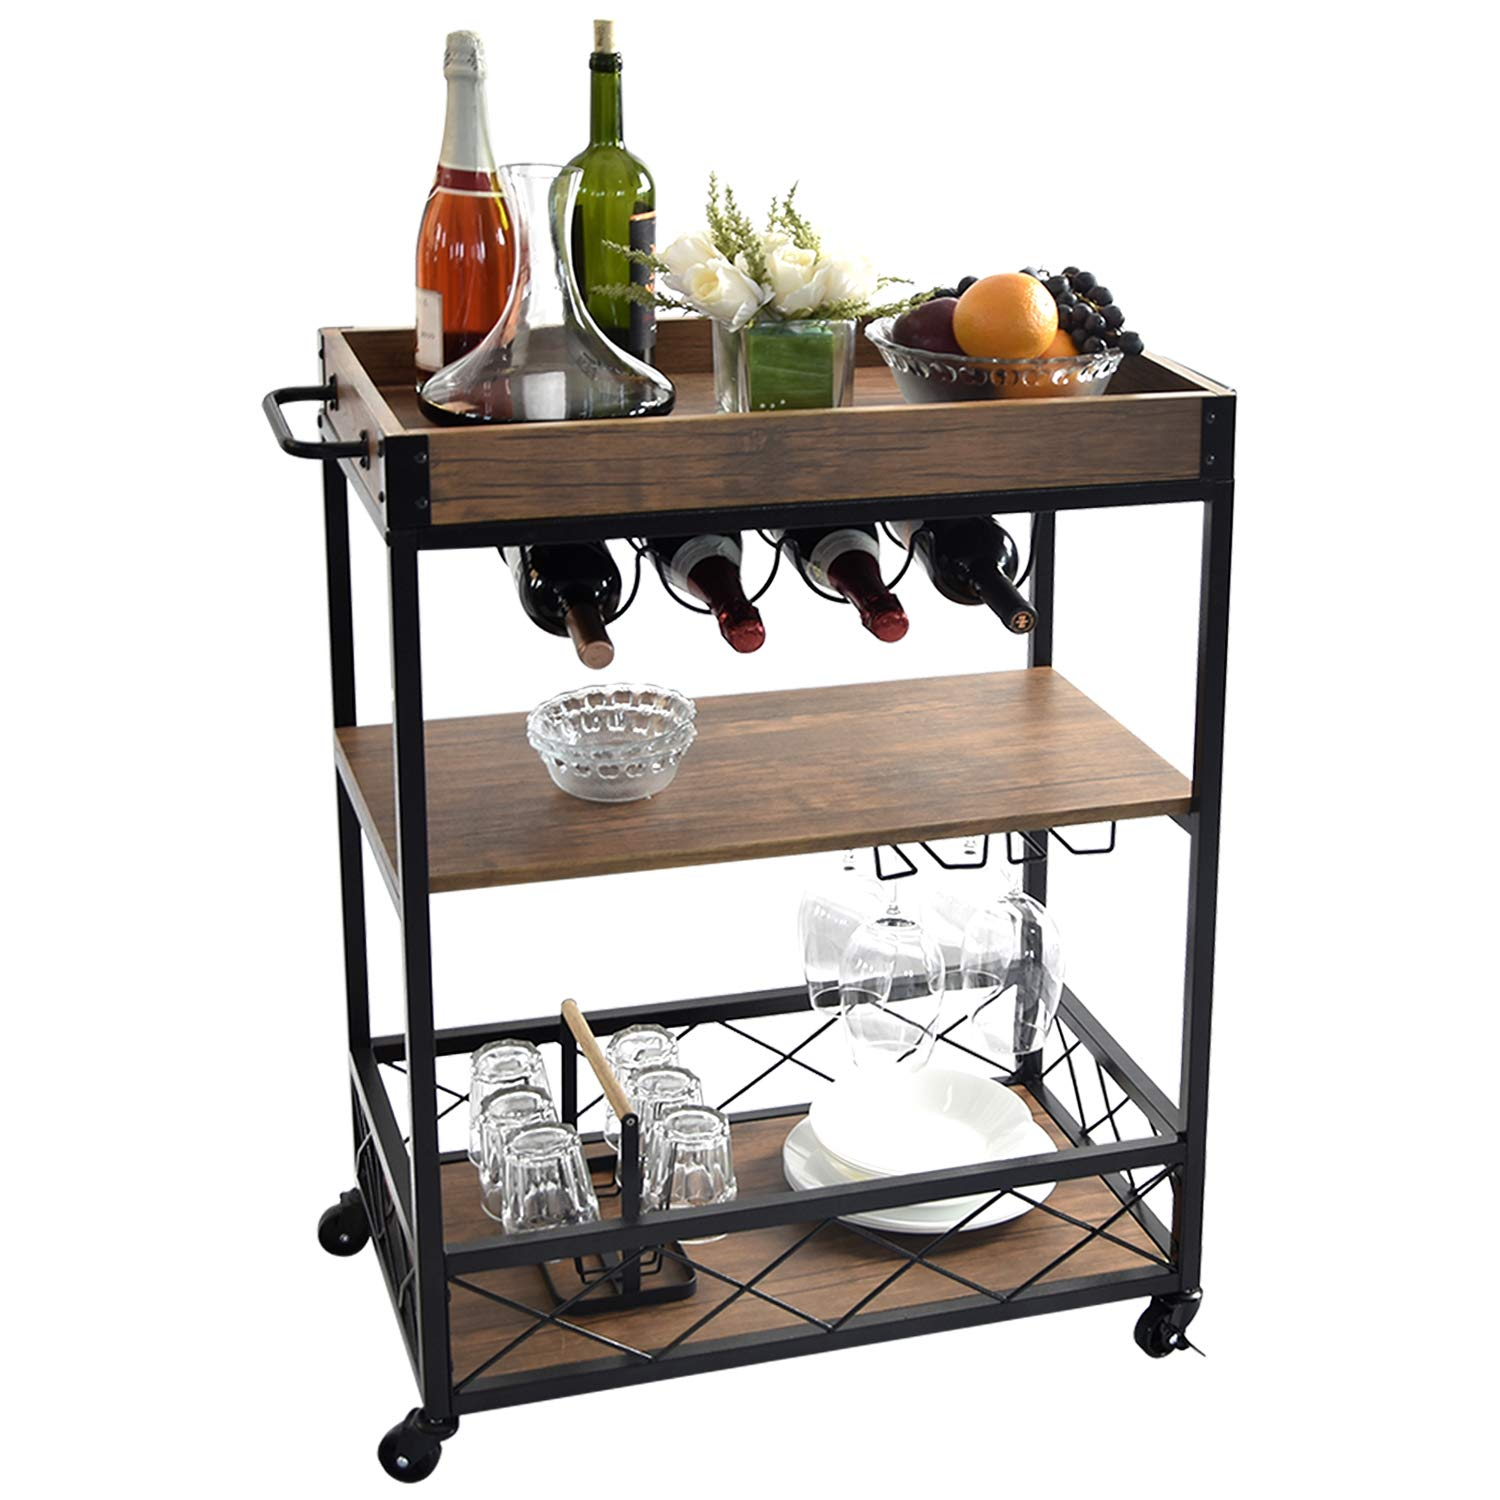 NSdirect Kitchen Bar Cart,Industrial Kitchen Bar Serving Cart Rolling Utility Storage Cart with 3-Tier Shelves,Metal Wine Rack Storage and Glass Bottle Holder,Removable Wood Top Box Container,Brown